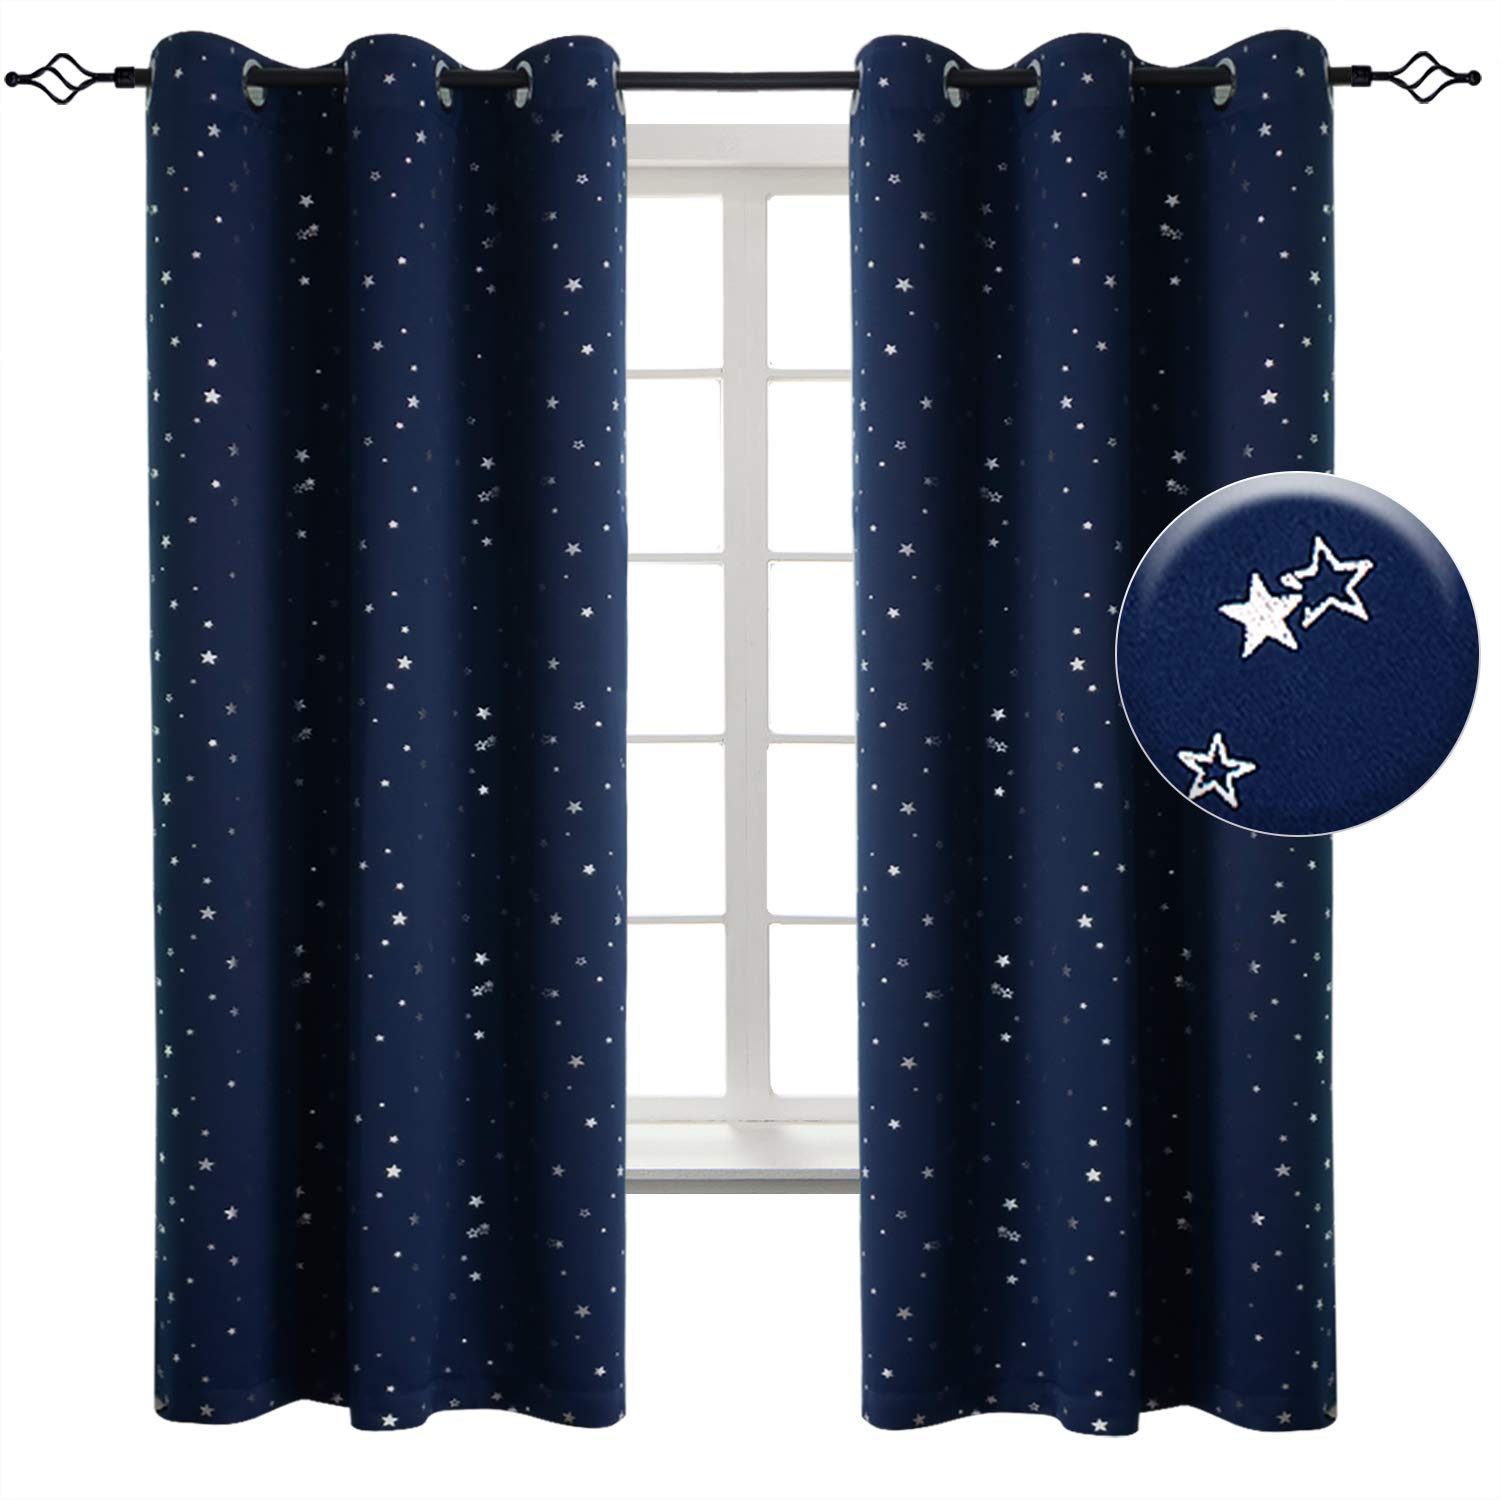 BGment Kid's Blue Blackout Curtains - Twinkle Star Curtain, Space Inspired Night Sky, Creative Blackout Window Treatment for Bedroom (2 Panel, 42 x 63 Panel, Blue) 42 x 63 Panel BGment Hometex